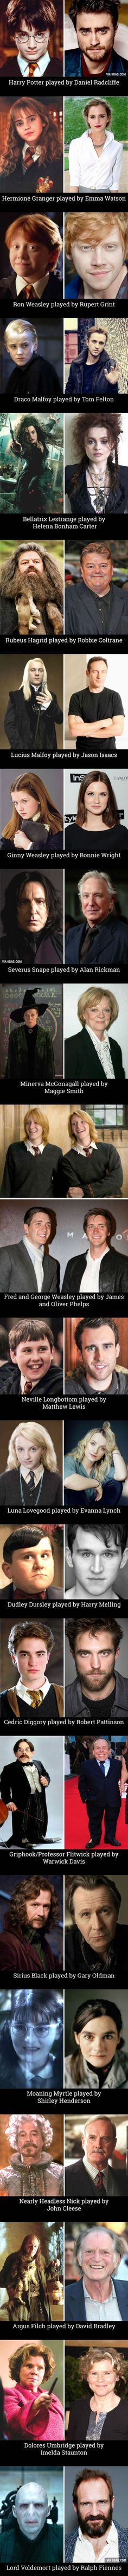 The actors from Harry Potter today, 14 years after the first installment...